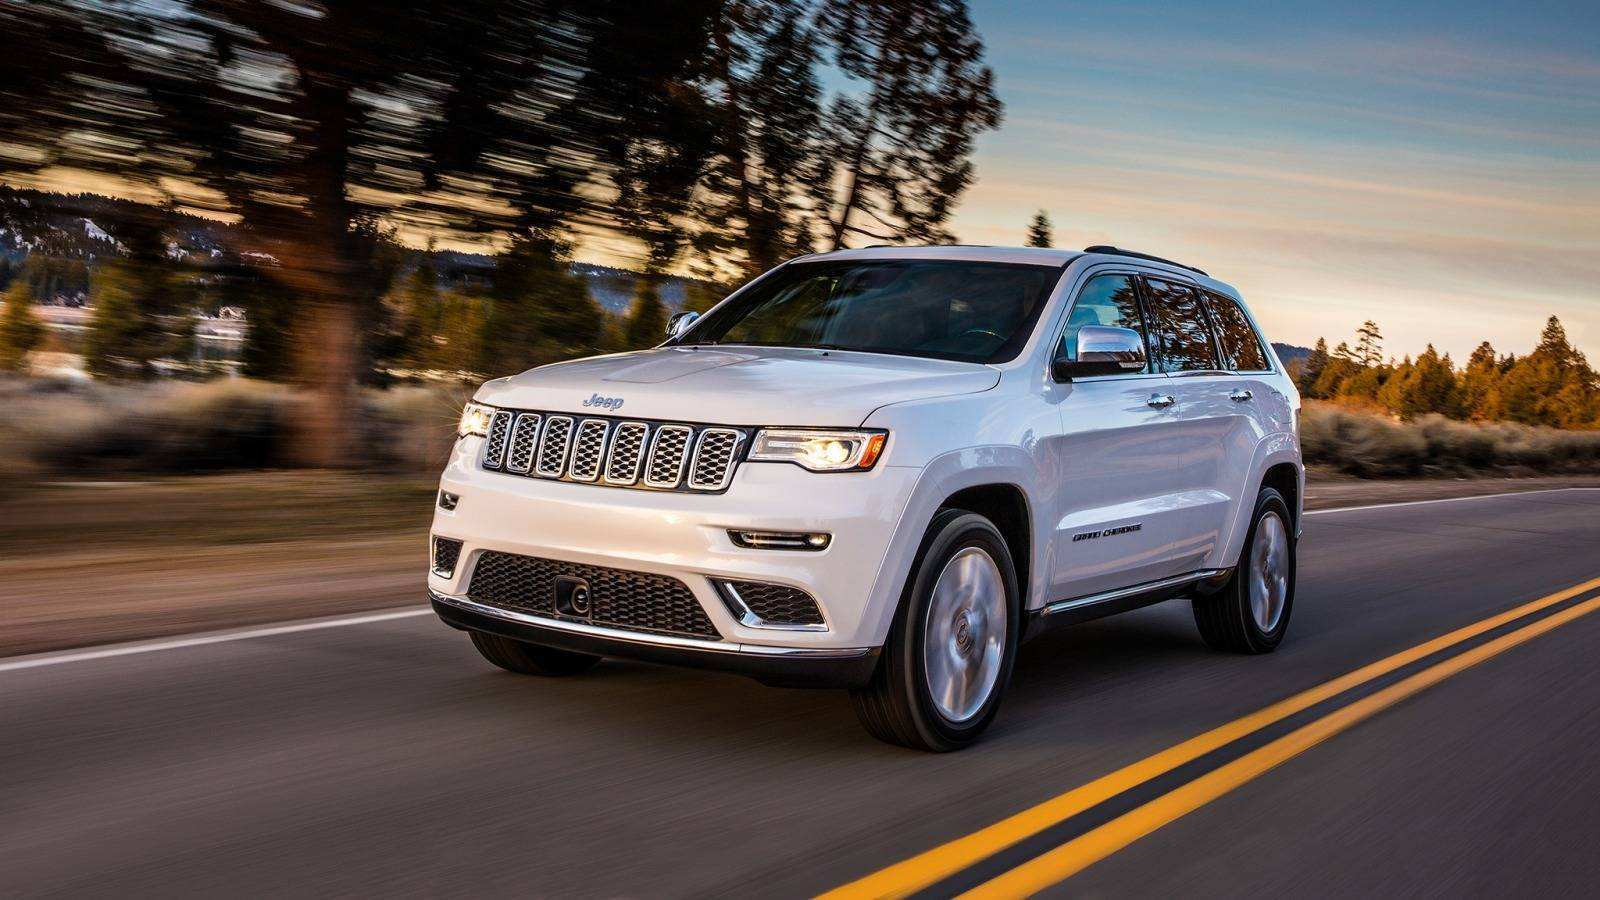 67 The 2019 Jeep 3 0 Diesel Images for 2019 Jeep 3 0 Diesel